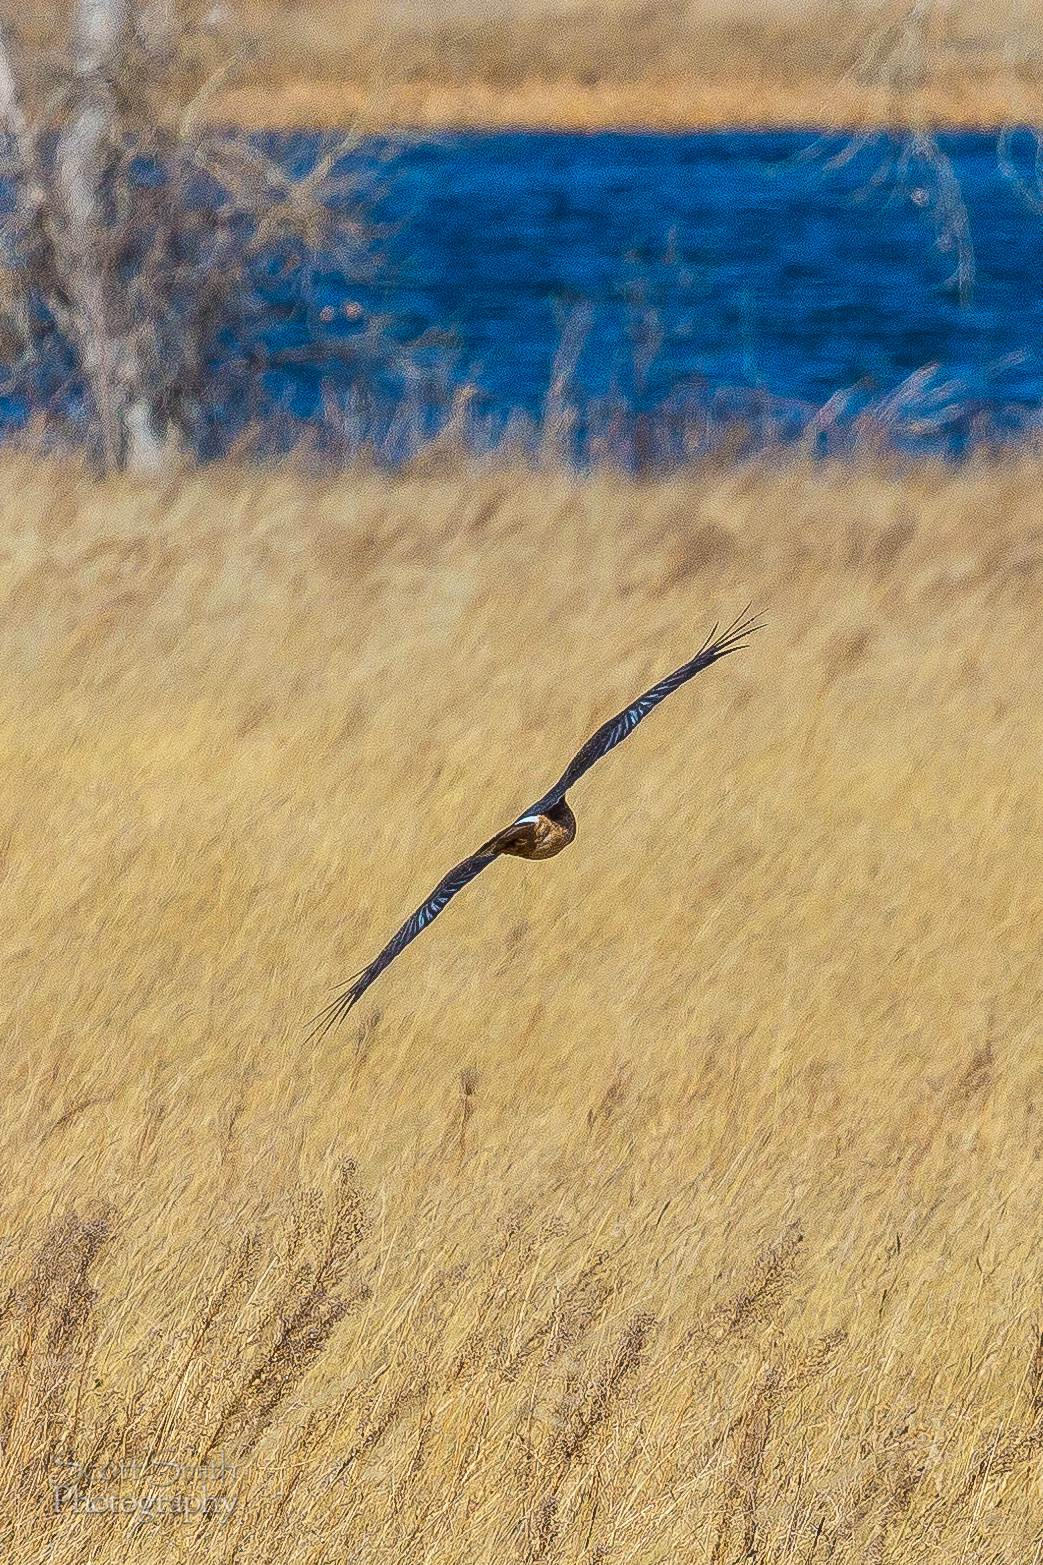 Marsh Hawk 3  - A marsh hawk glides over the grass at the Rocky Mountain Arsenal Wildlife Refuge. by D Scott Smith